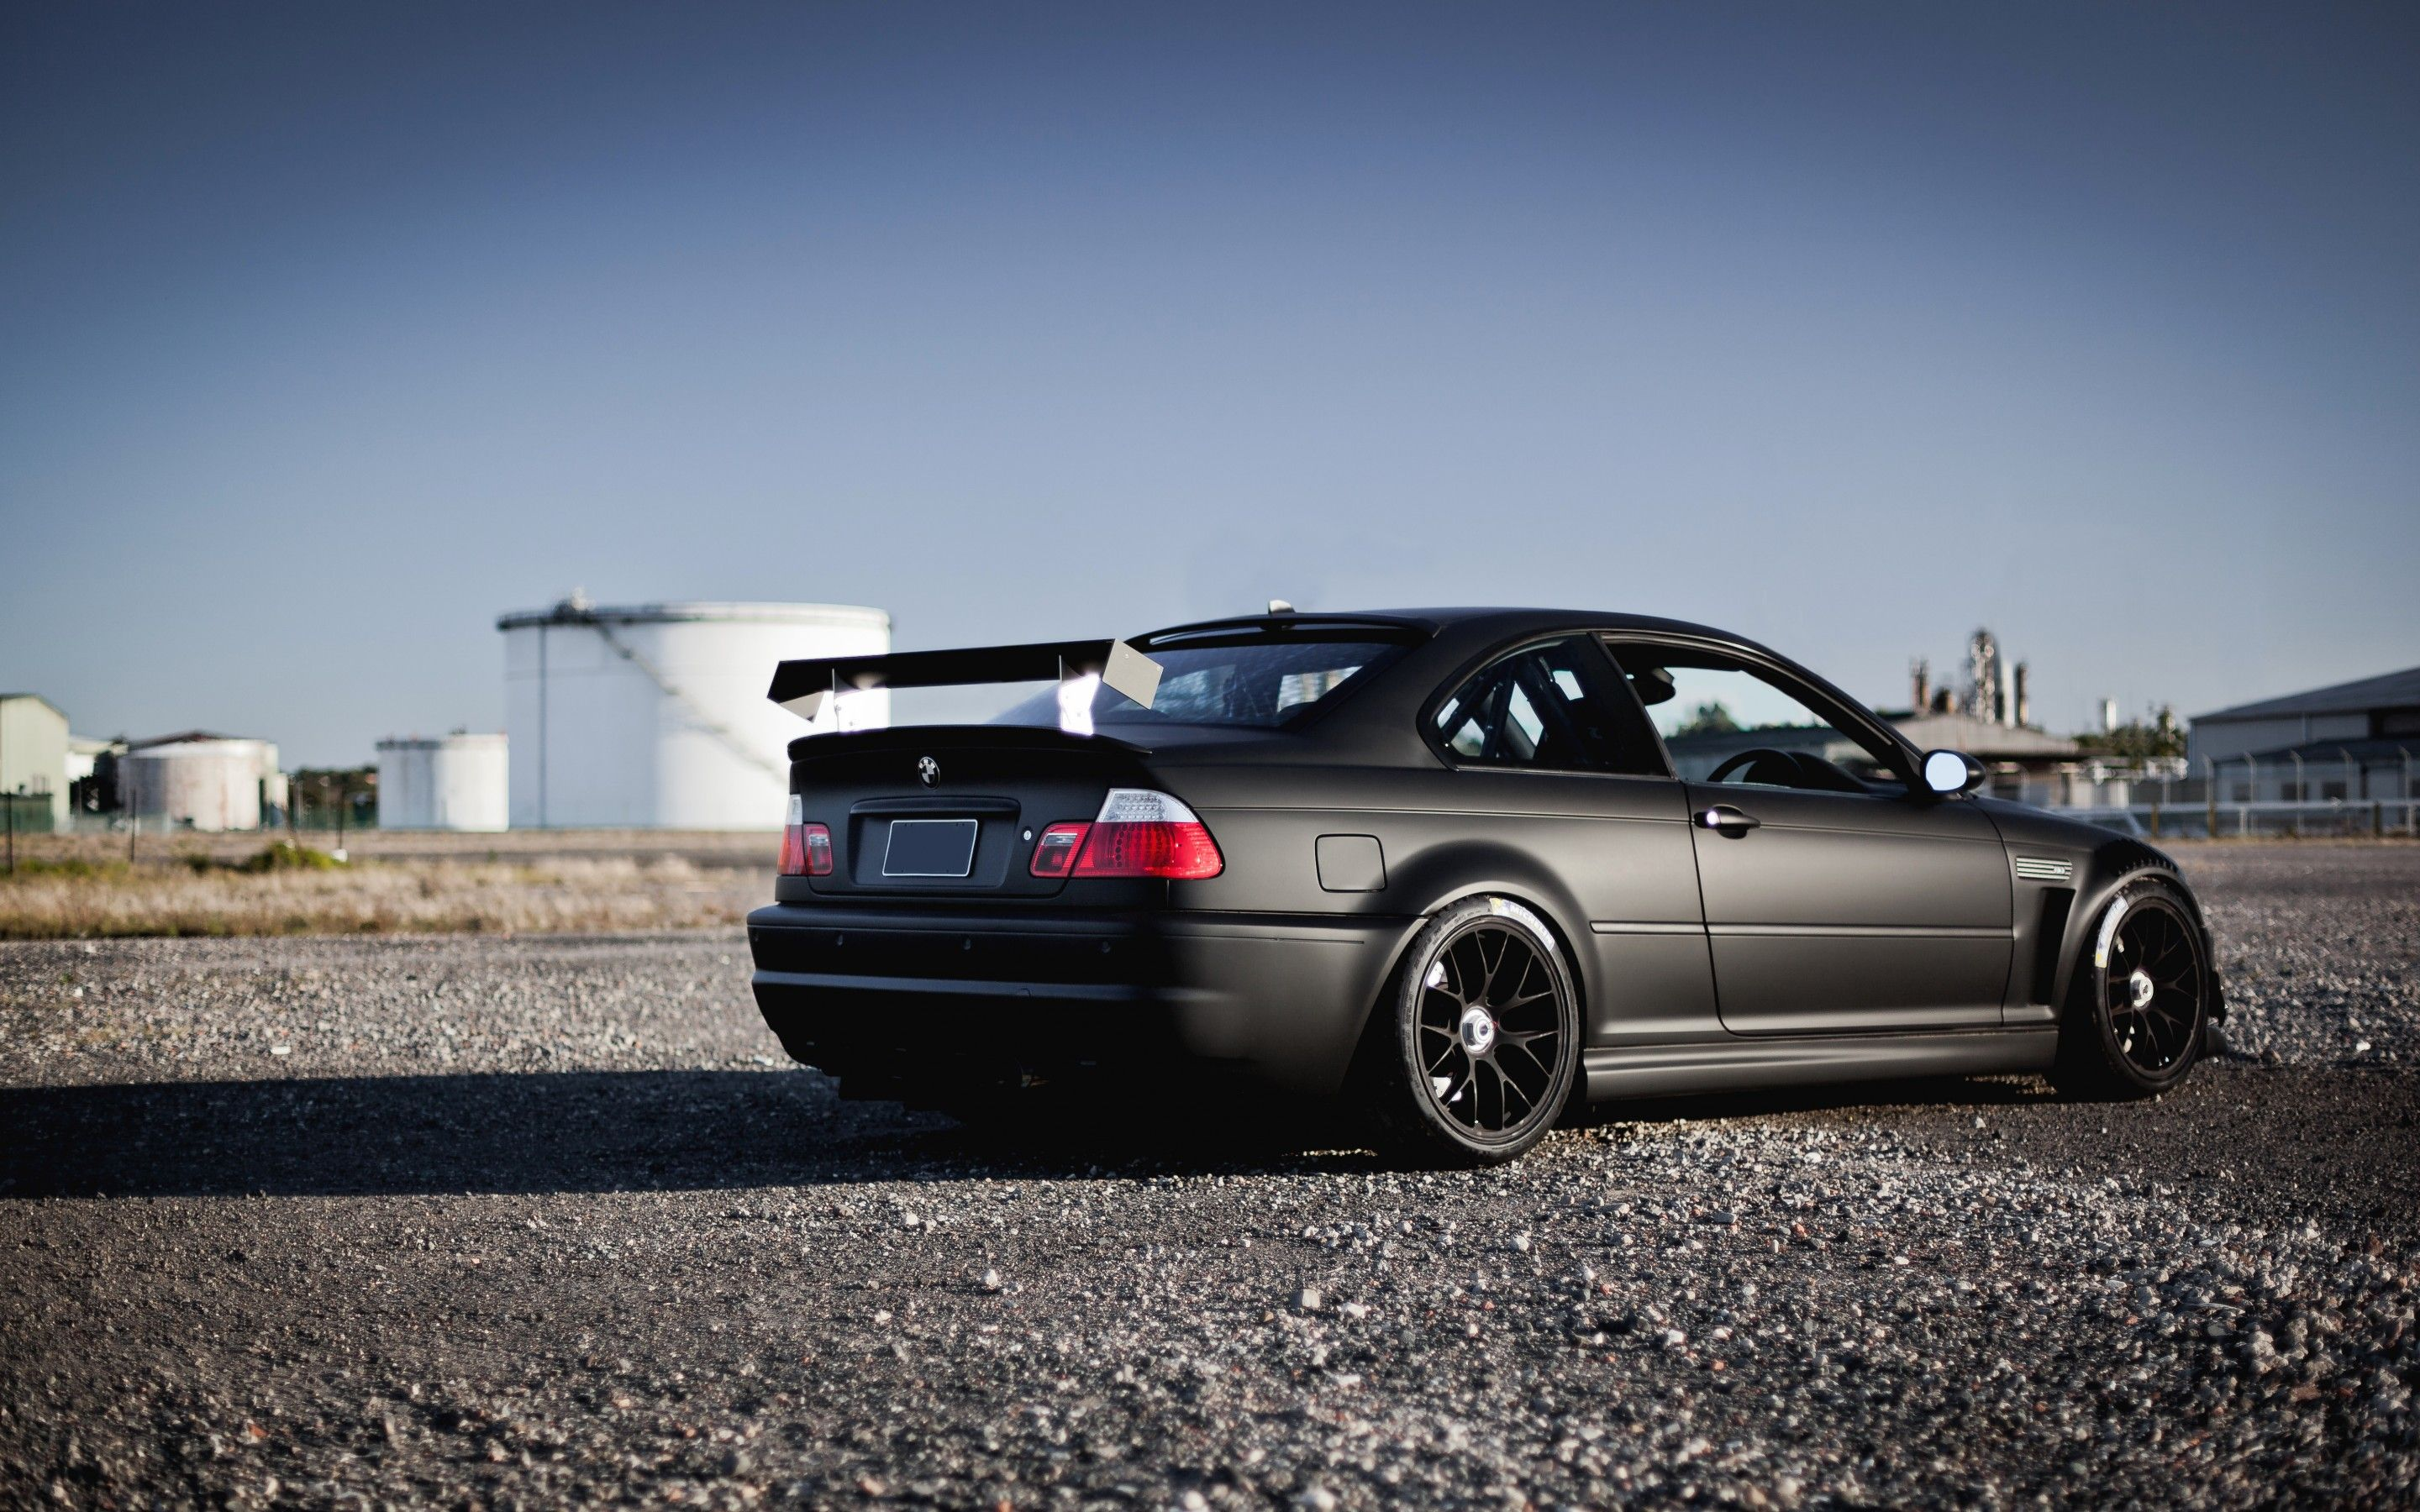 E46 M3 Wallpapers Top Free E46 M3 Backgrounds Wallpaperaccess